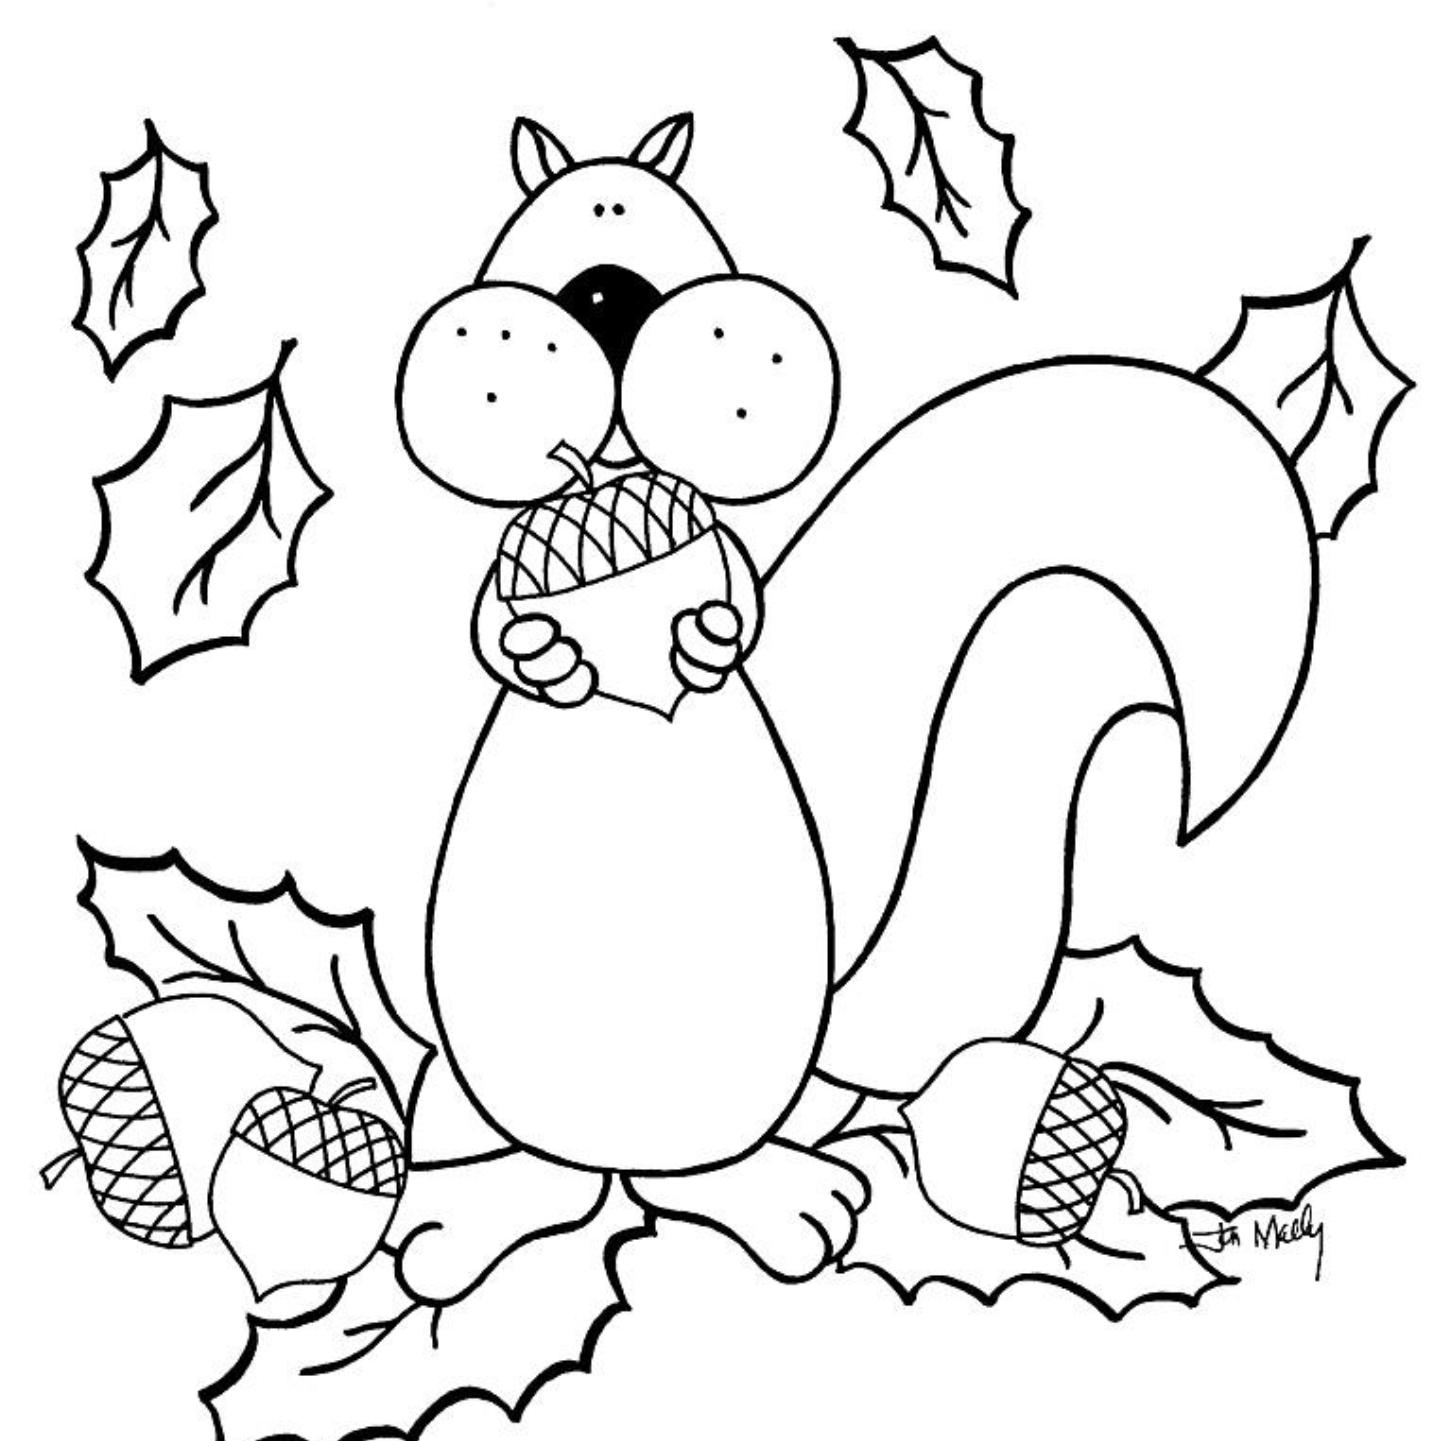 1450x1441 Leaf Coloring Pages For Preschool